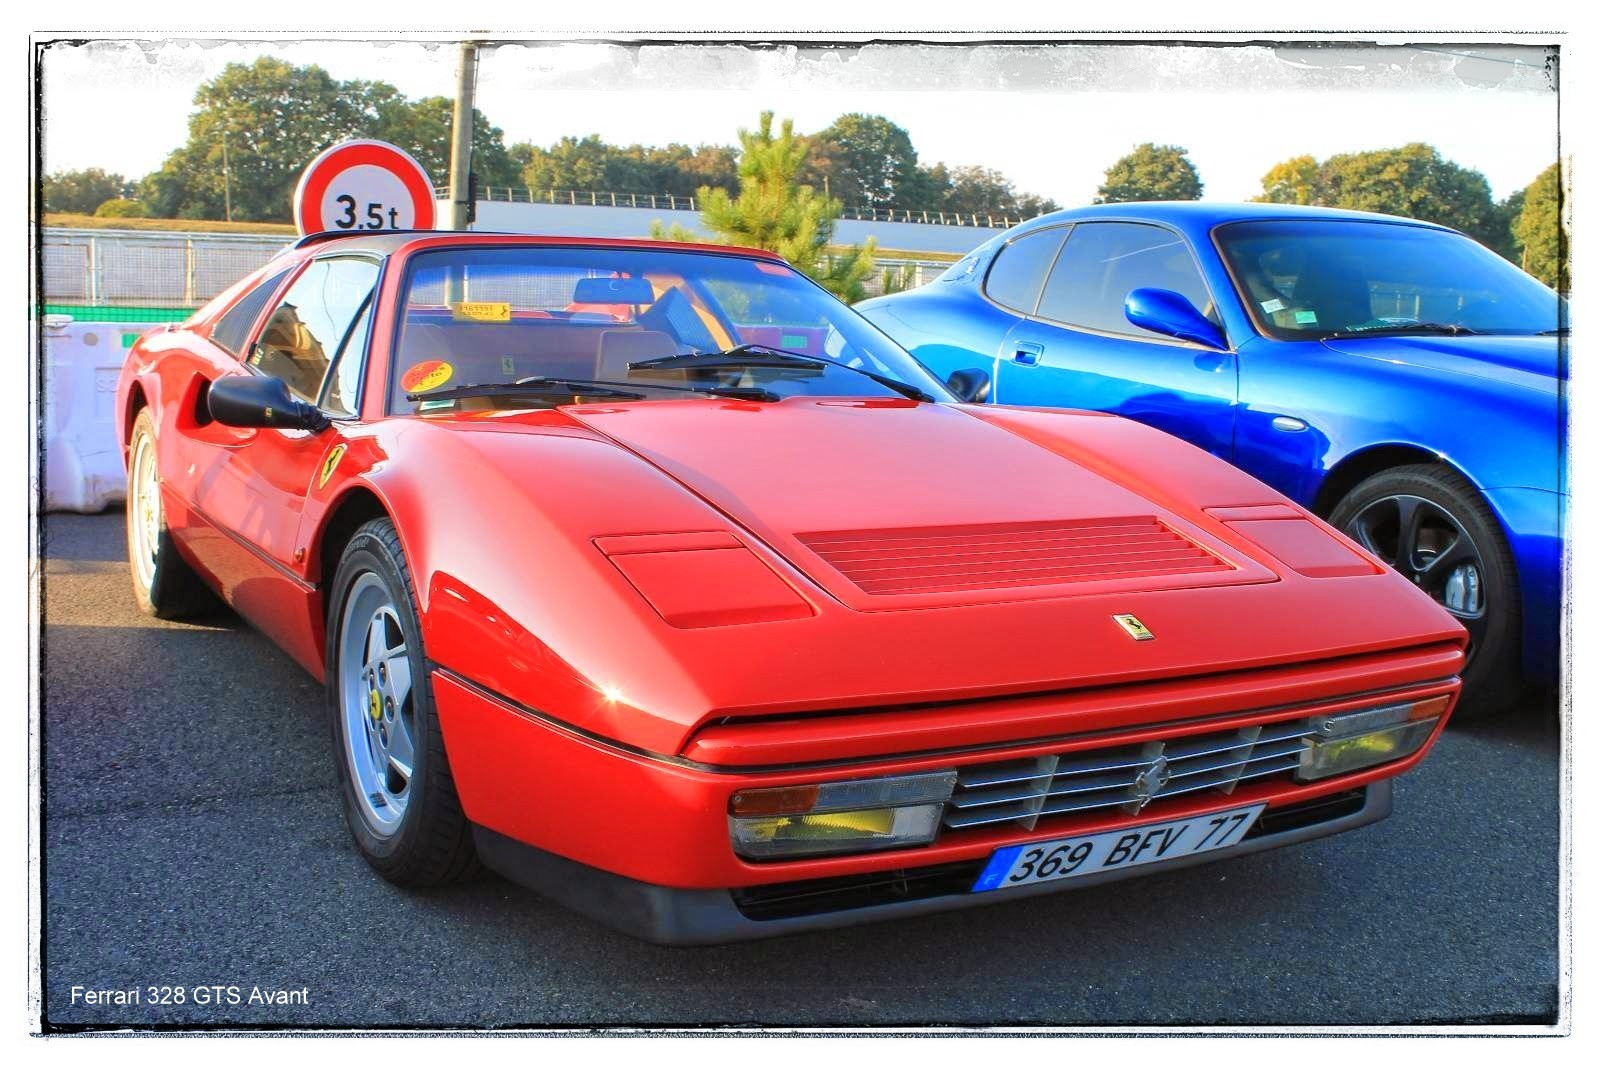 italian meeting - Ferrari 328 GTS